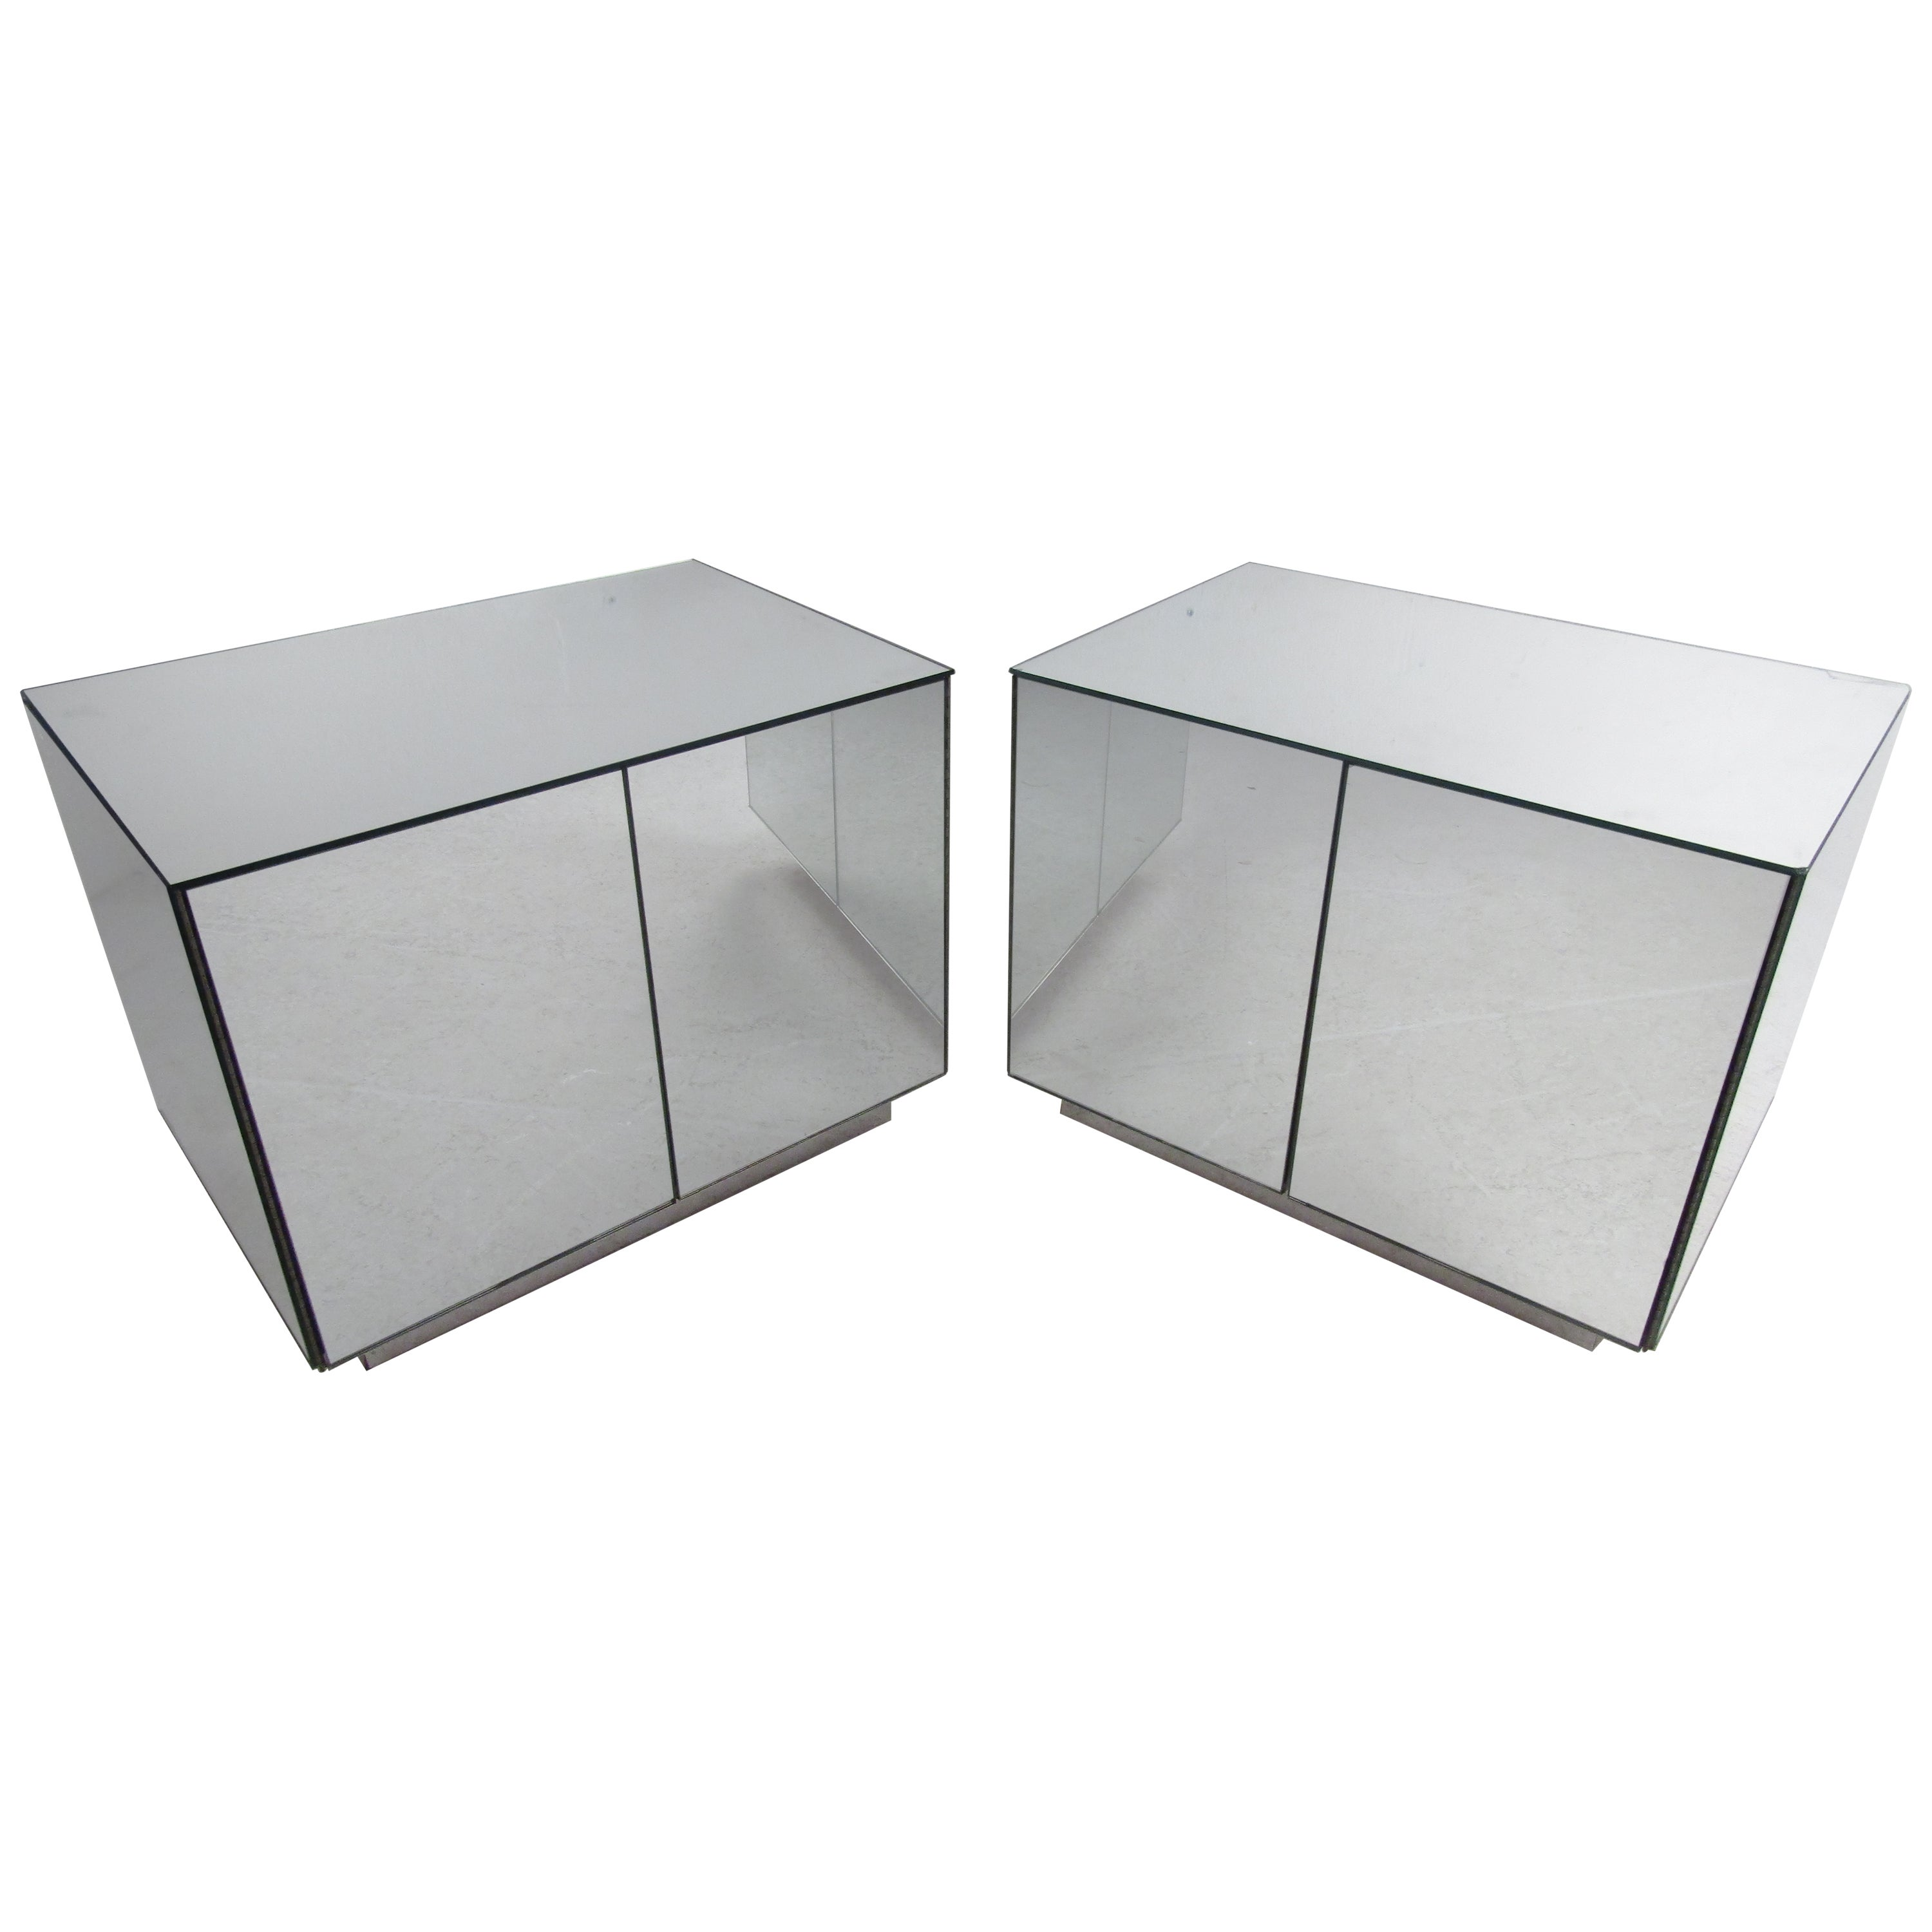 Pair of Vintage Modern Mirrored Cabinets